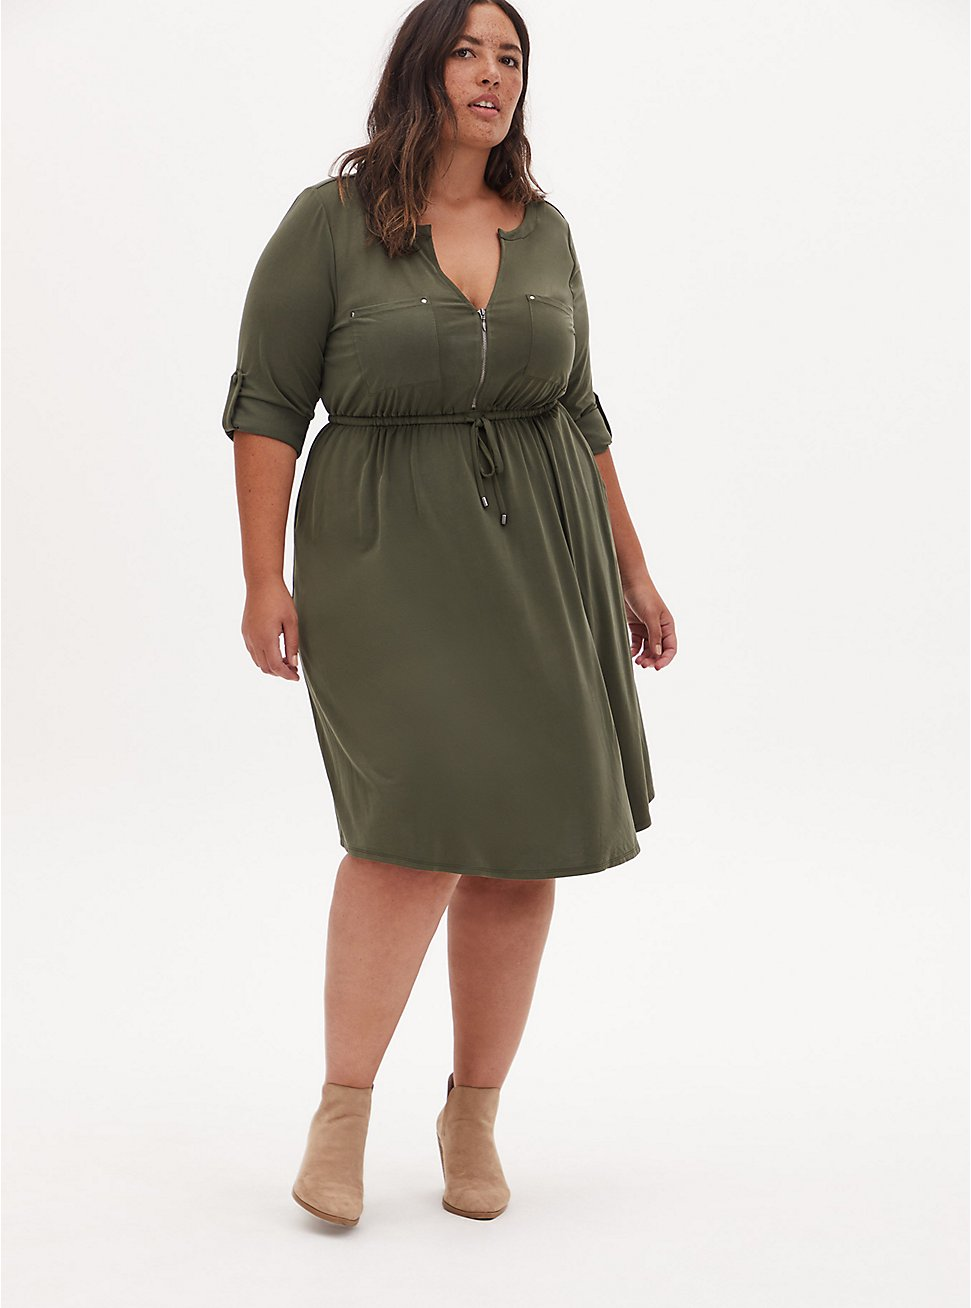 Olive Green Cupro Zip Front Drawstring Shirt Dress, DEEP DEPTHS, hi-res